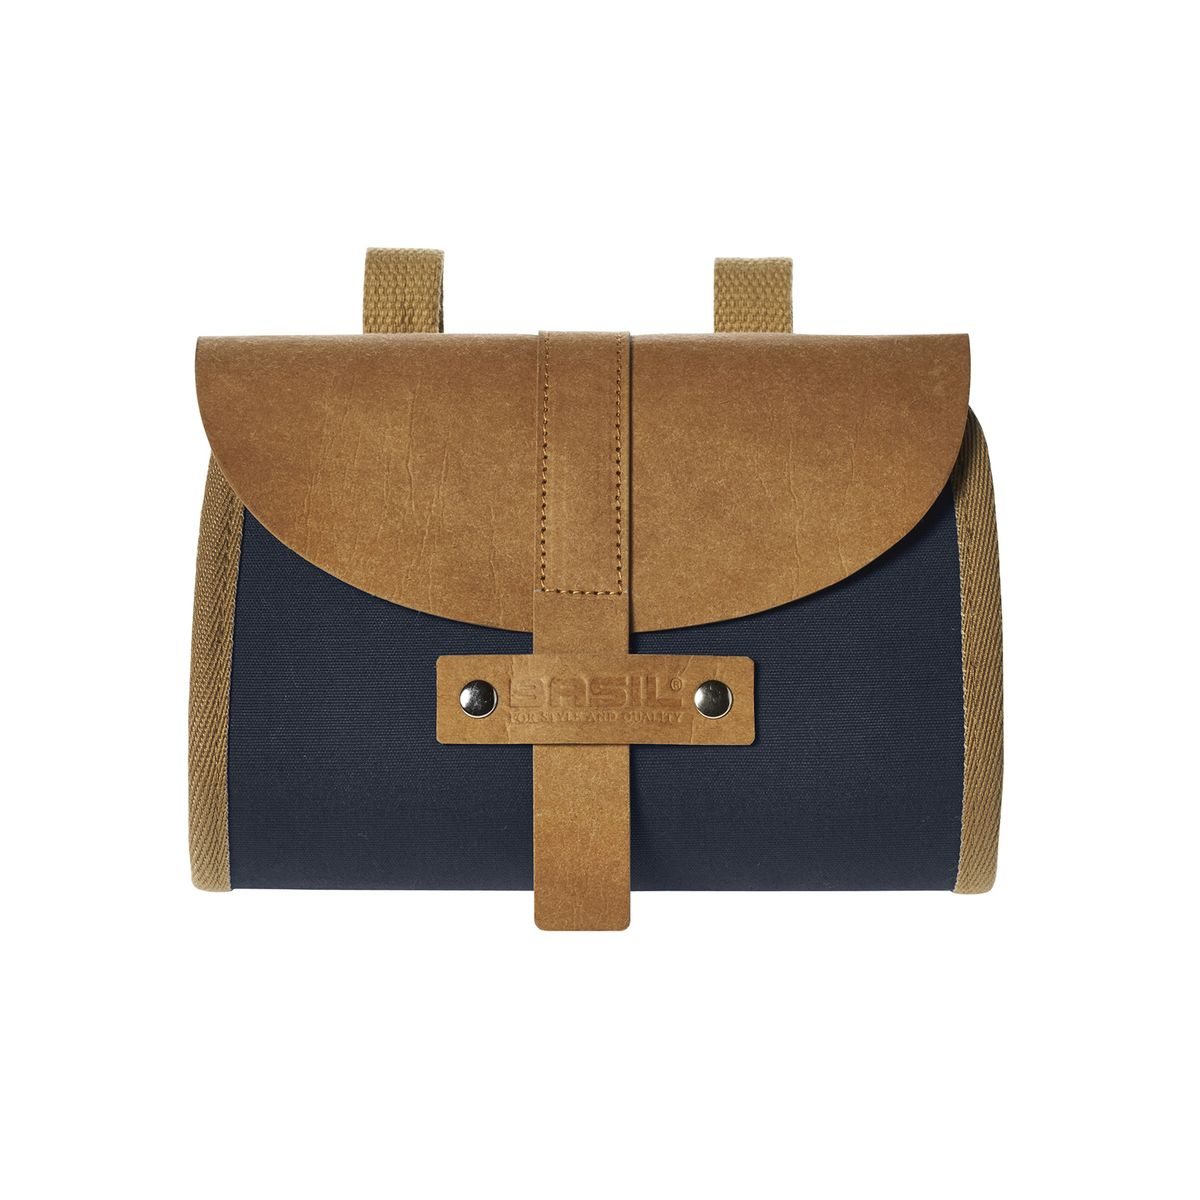 BASIL PORTLAND SADDLE BAG saddle bag | Saddle bags